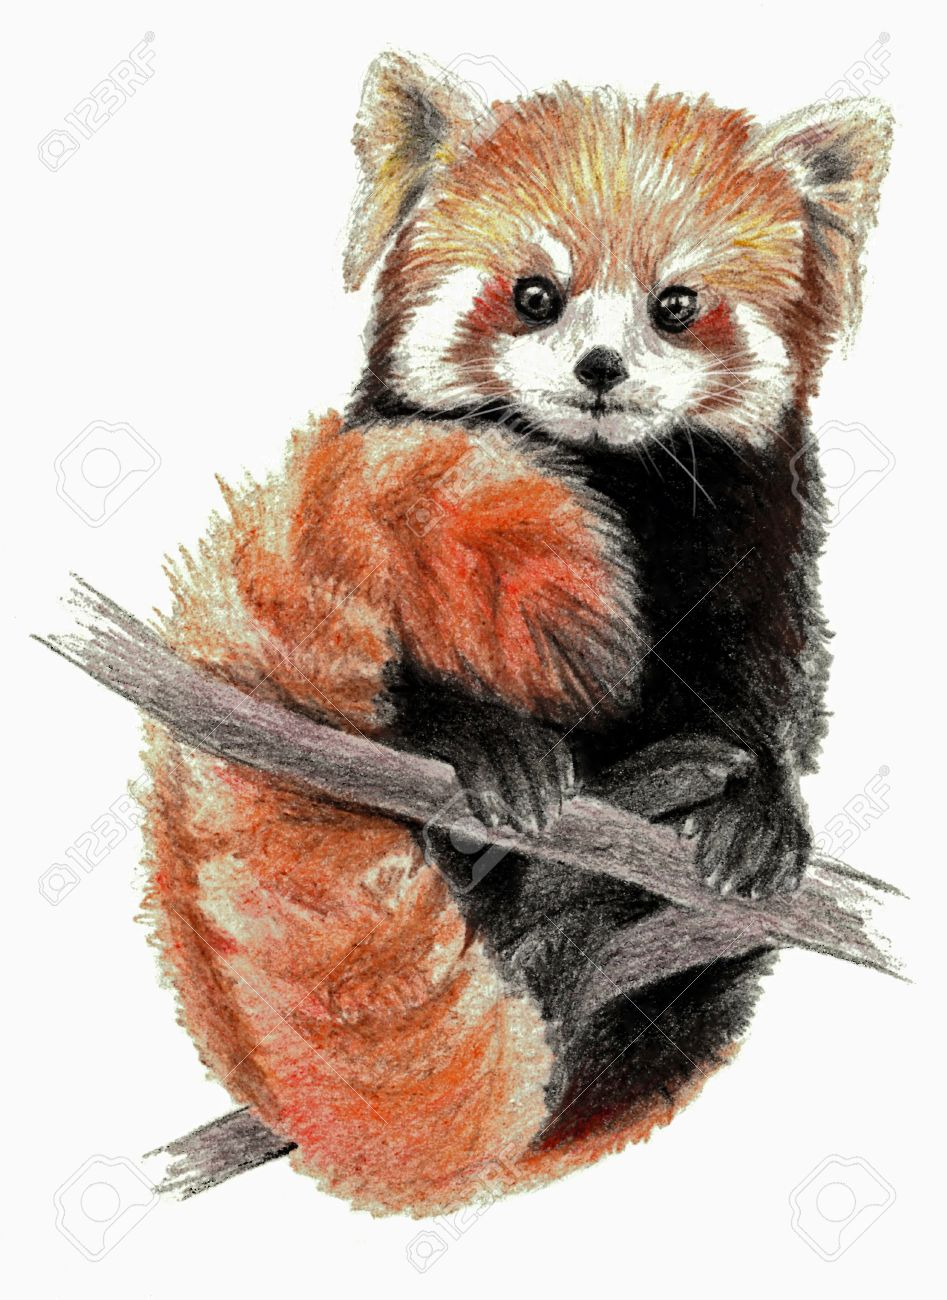 Red panda isolated on white background pencil drawing